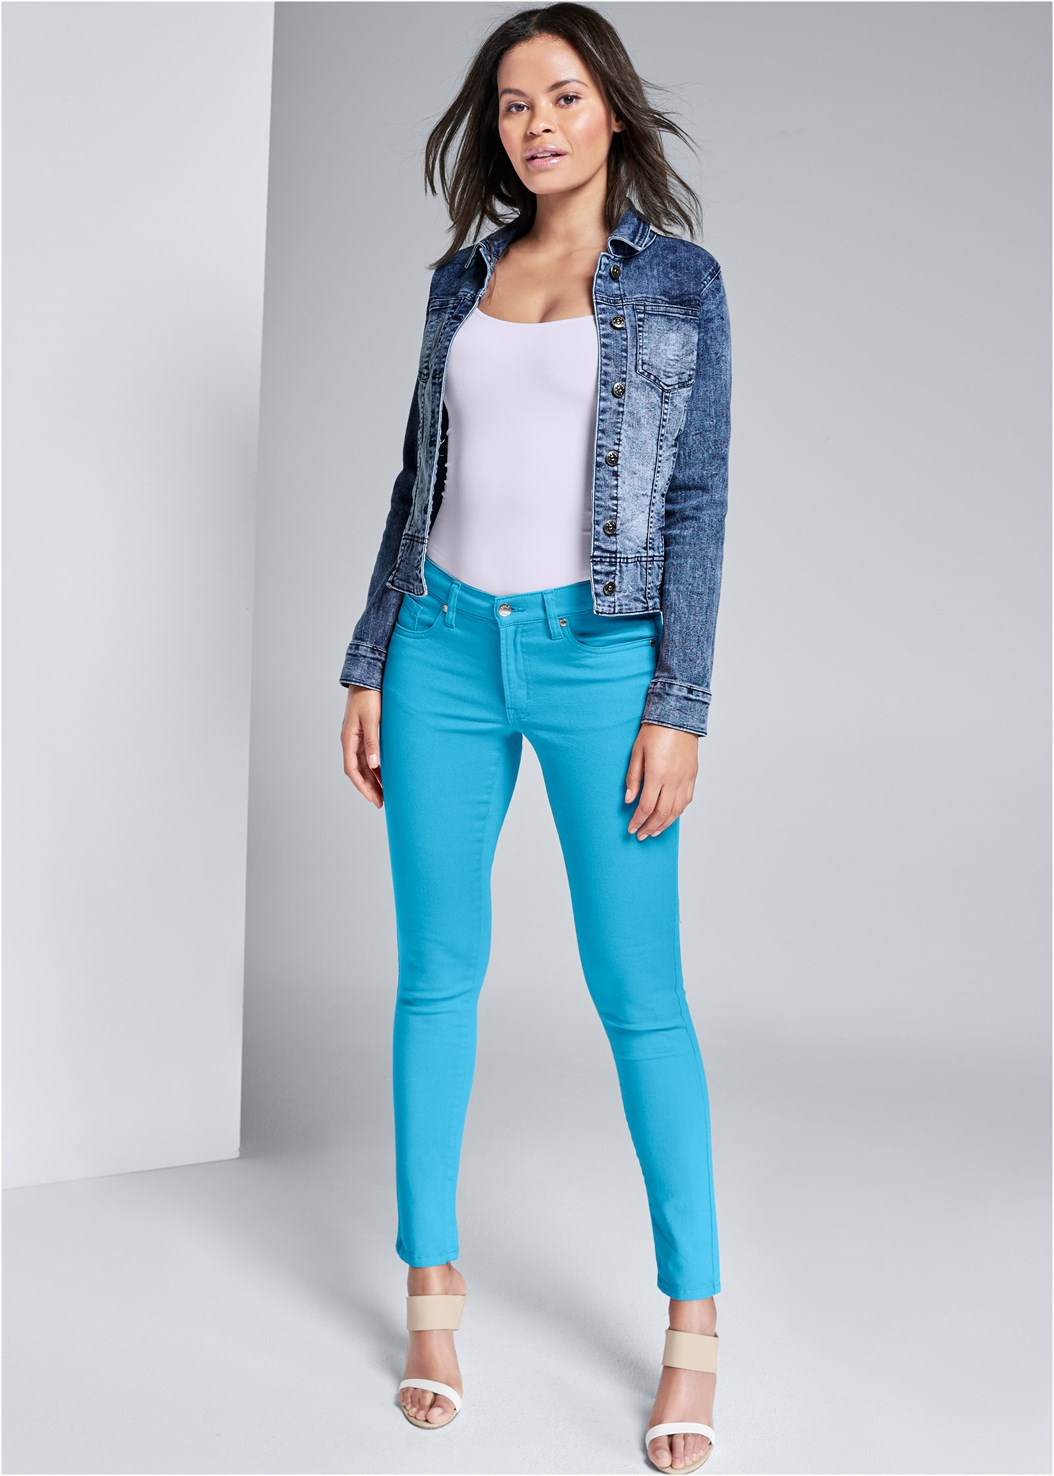 Mid Rise Color Skinny Jeans,Basic Cami Two Pack,Jean Jacket,Color Block Mules